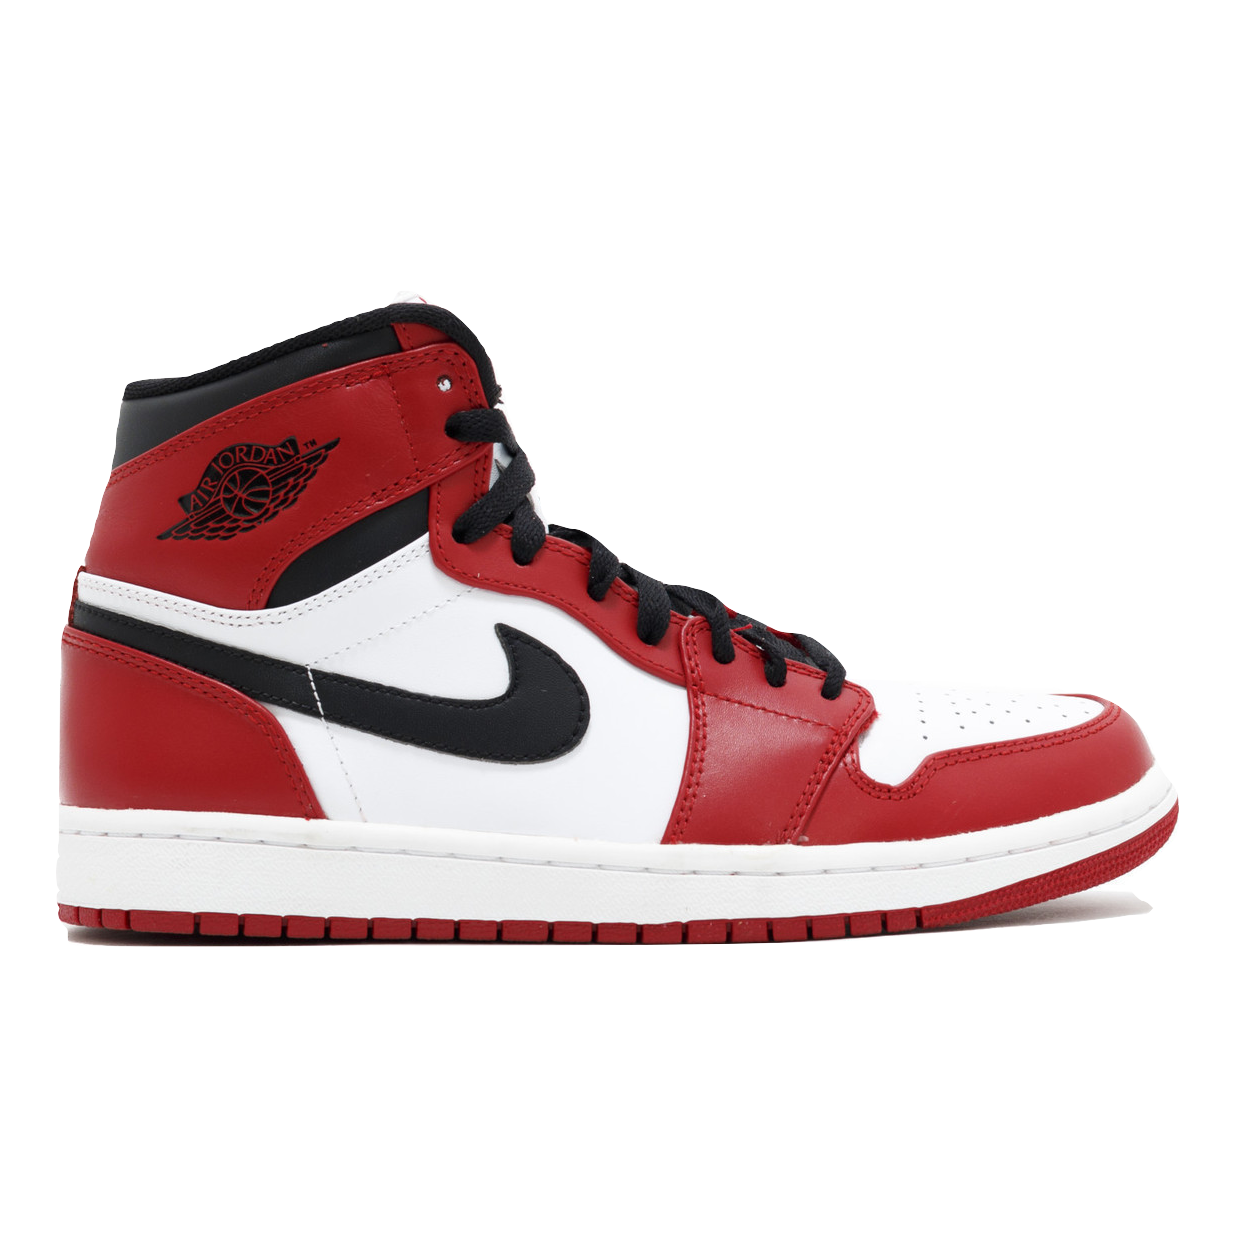 Air Jordan 1 Retro - Chicago (2013)